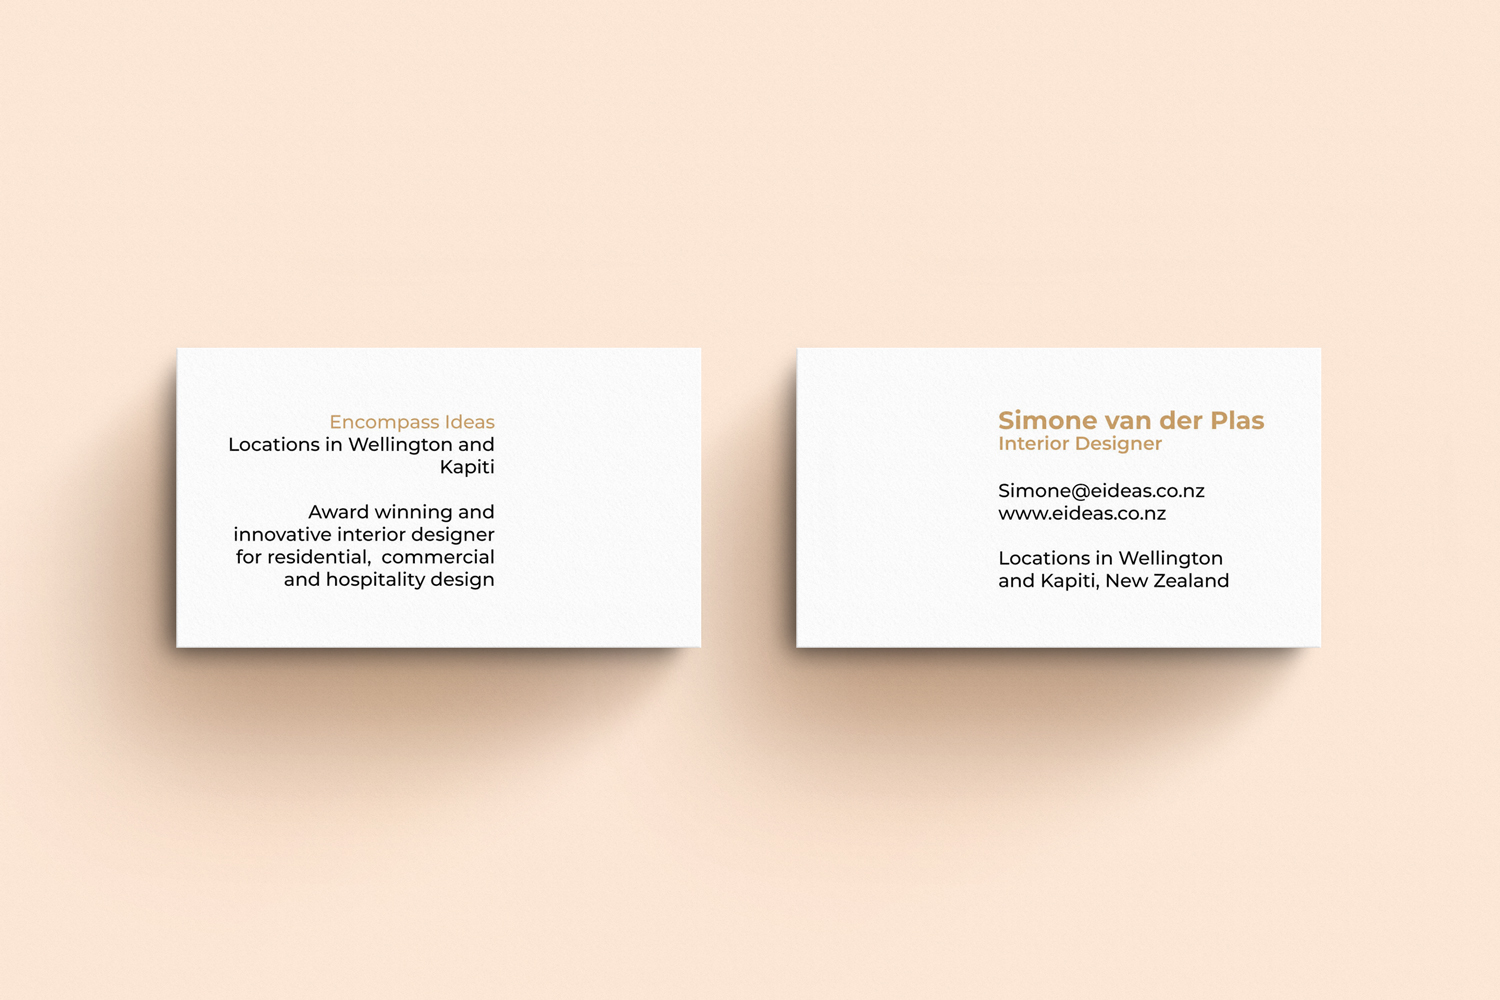 Modern Upmarket Architecture Business Card Design For Encompass Ideas By Yooo Design 21354867